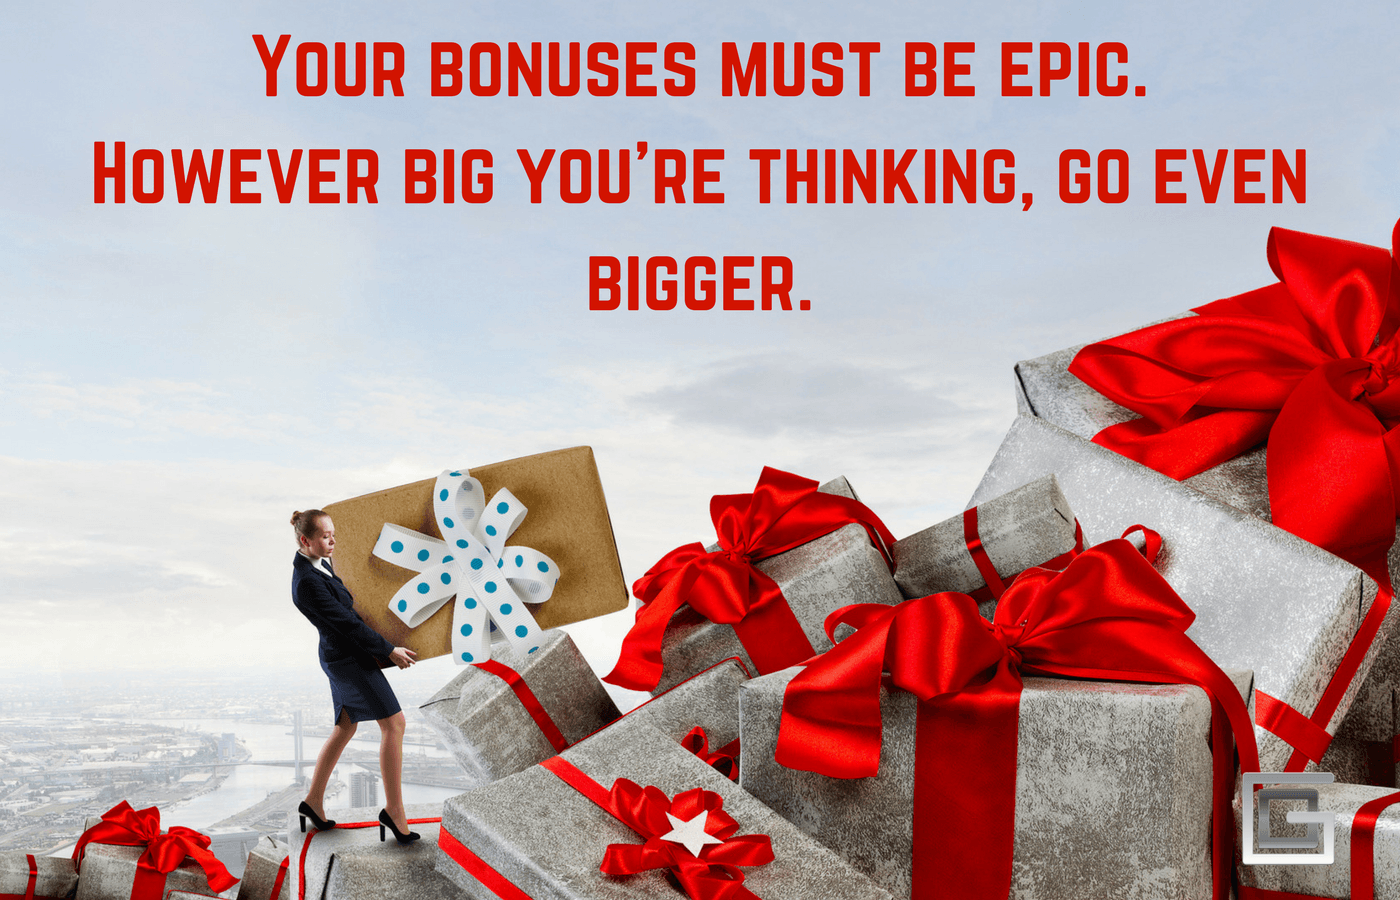 Epic, value packed bonuses are the key to a successful conversion rate.